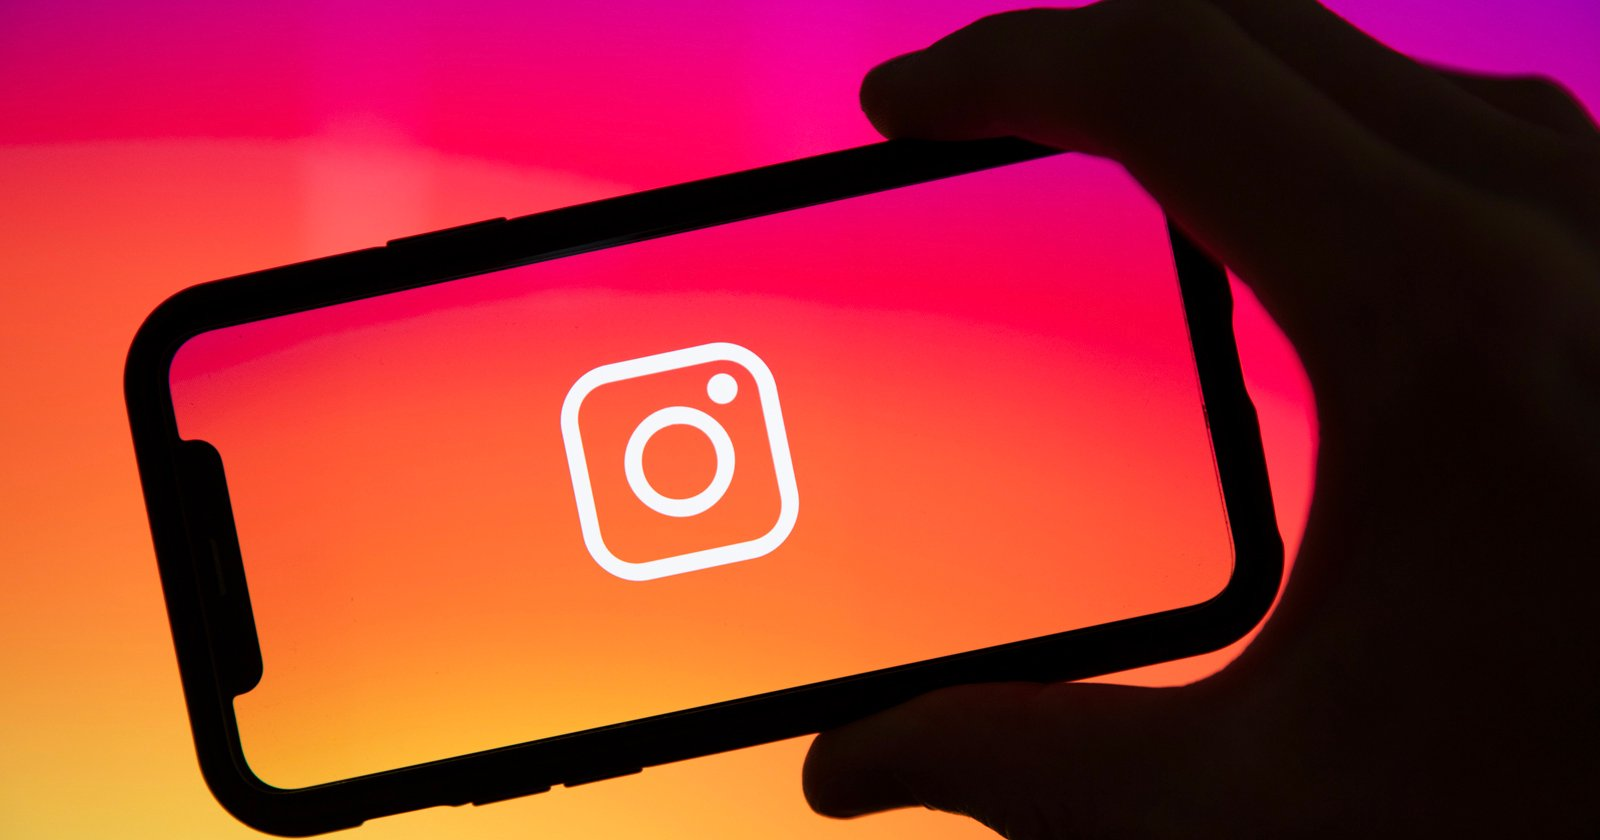 Facebook Wants to Make a Version of Instagram Specifically for Children